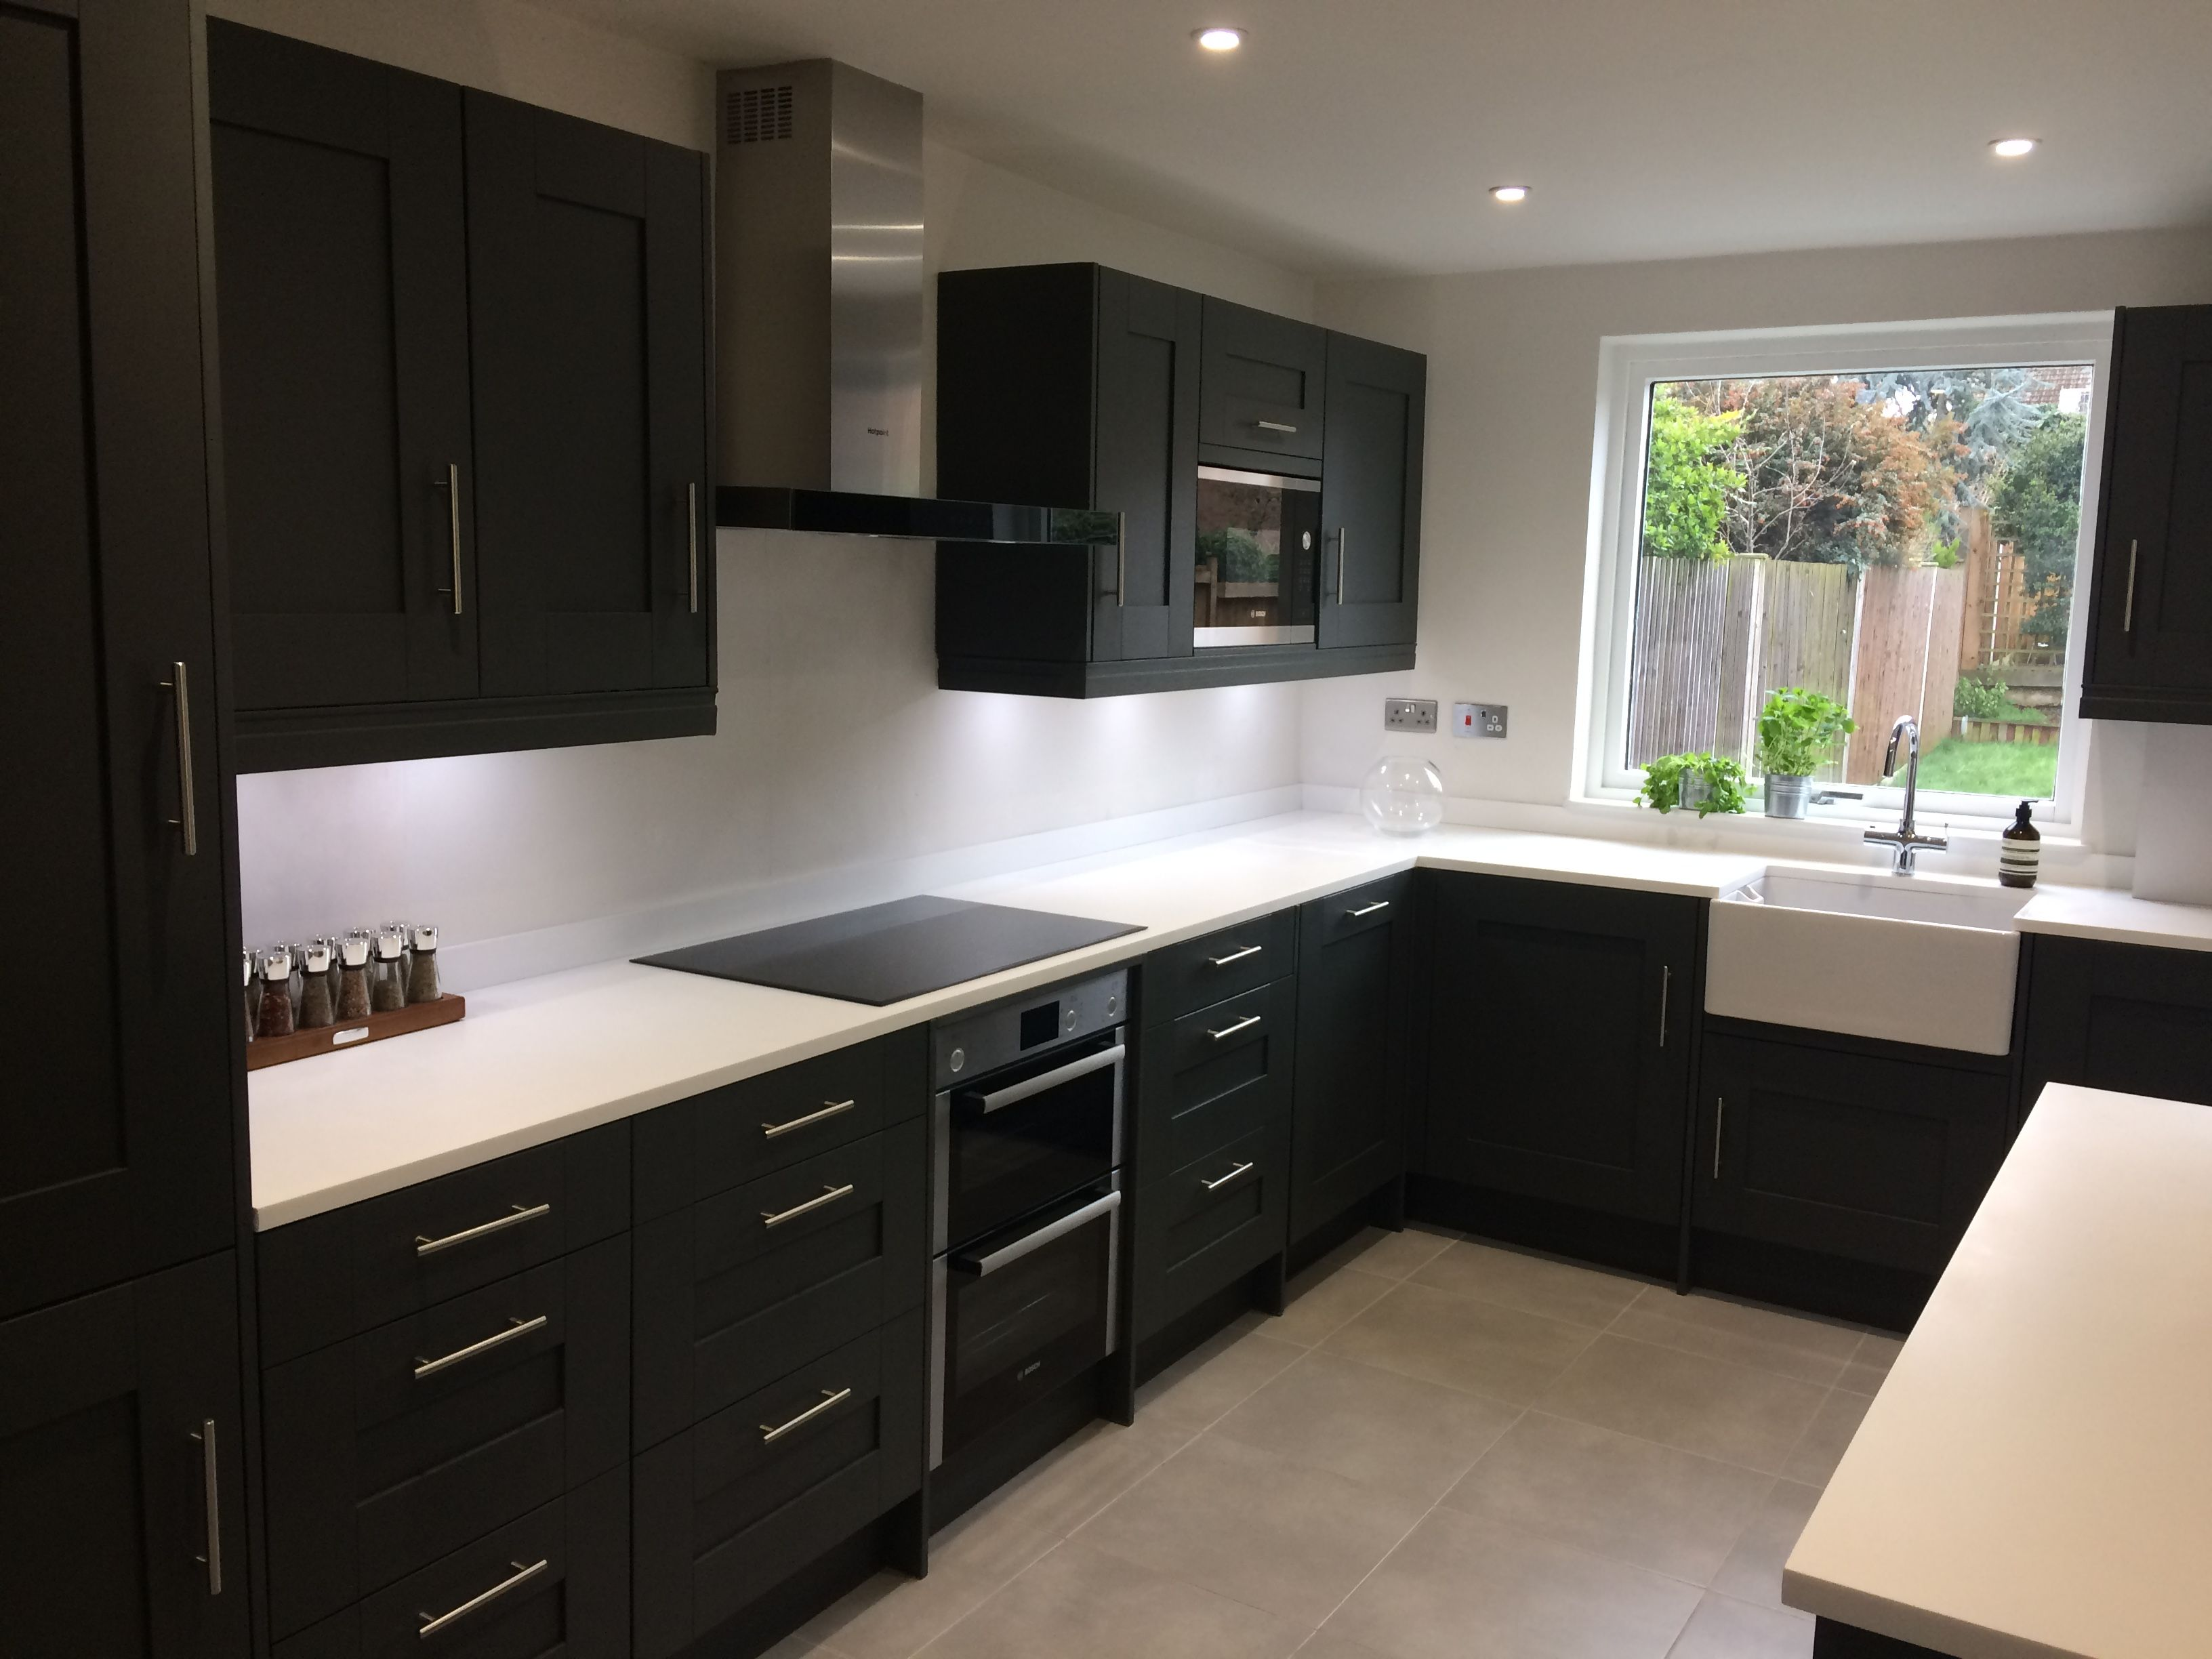 Pin By Camilla Fowlie On Newark Road Kitchen Cabinets Home Decor